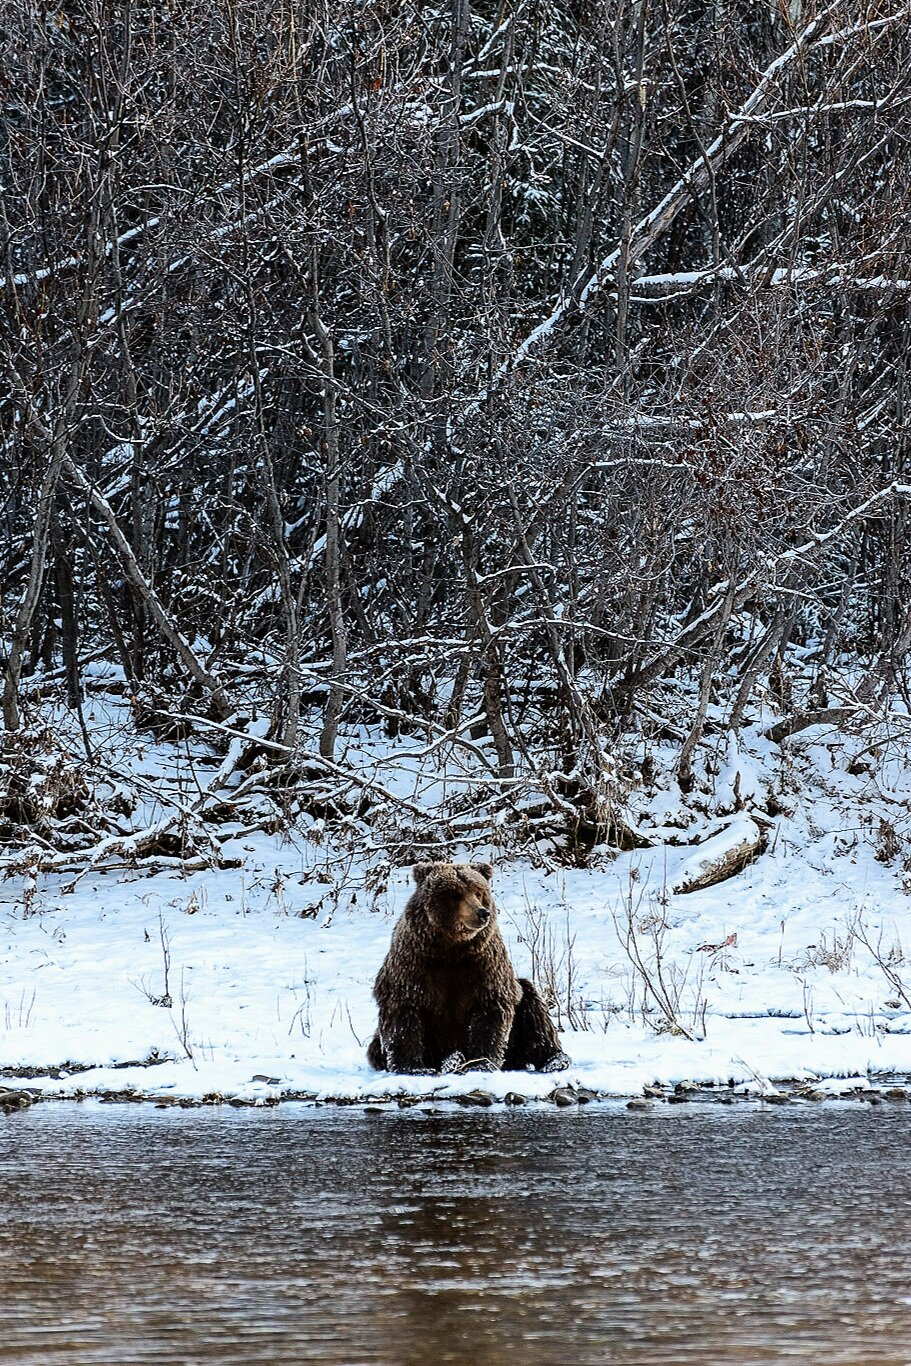 Ice Grizzly Sitting on a Snowy Riverbank 2